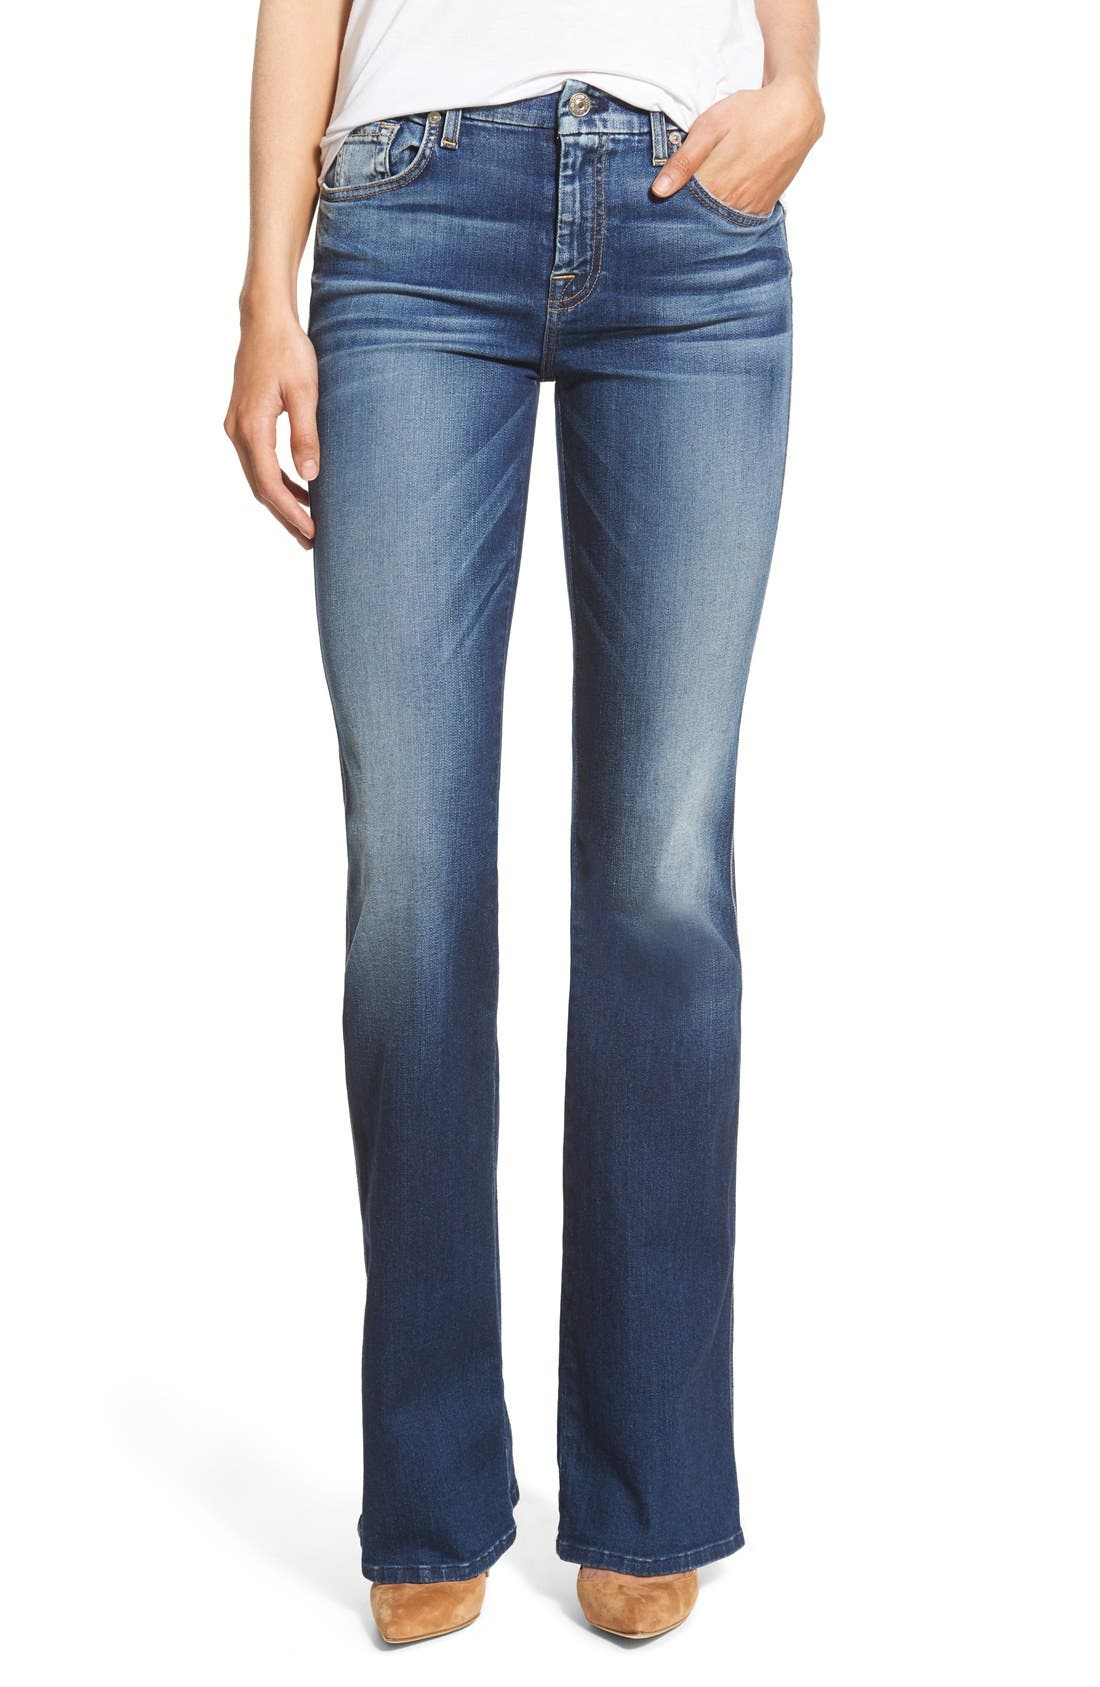 Alternate Image 1 Selected - 7 For All Mankind® A-Pocket Flare Jeans (Bright Indigo)